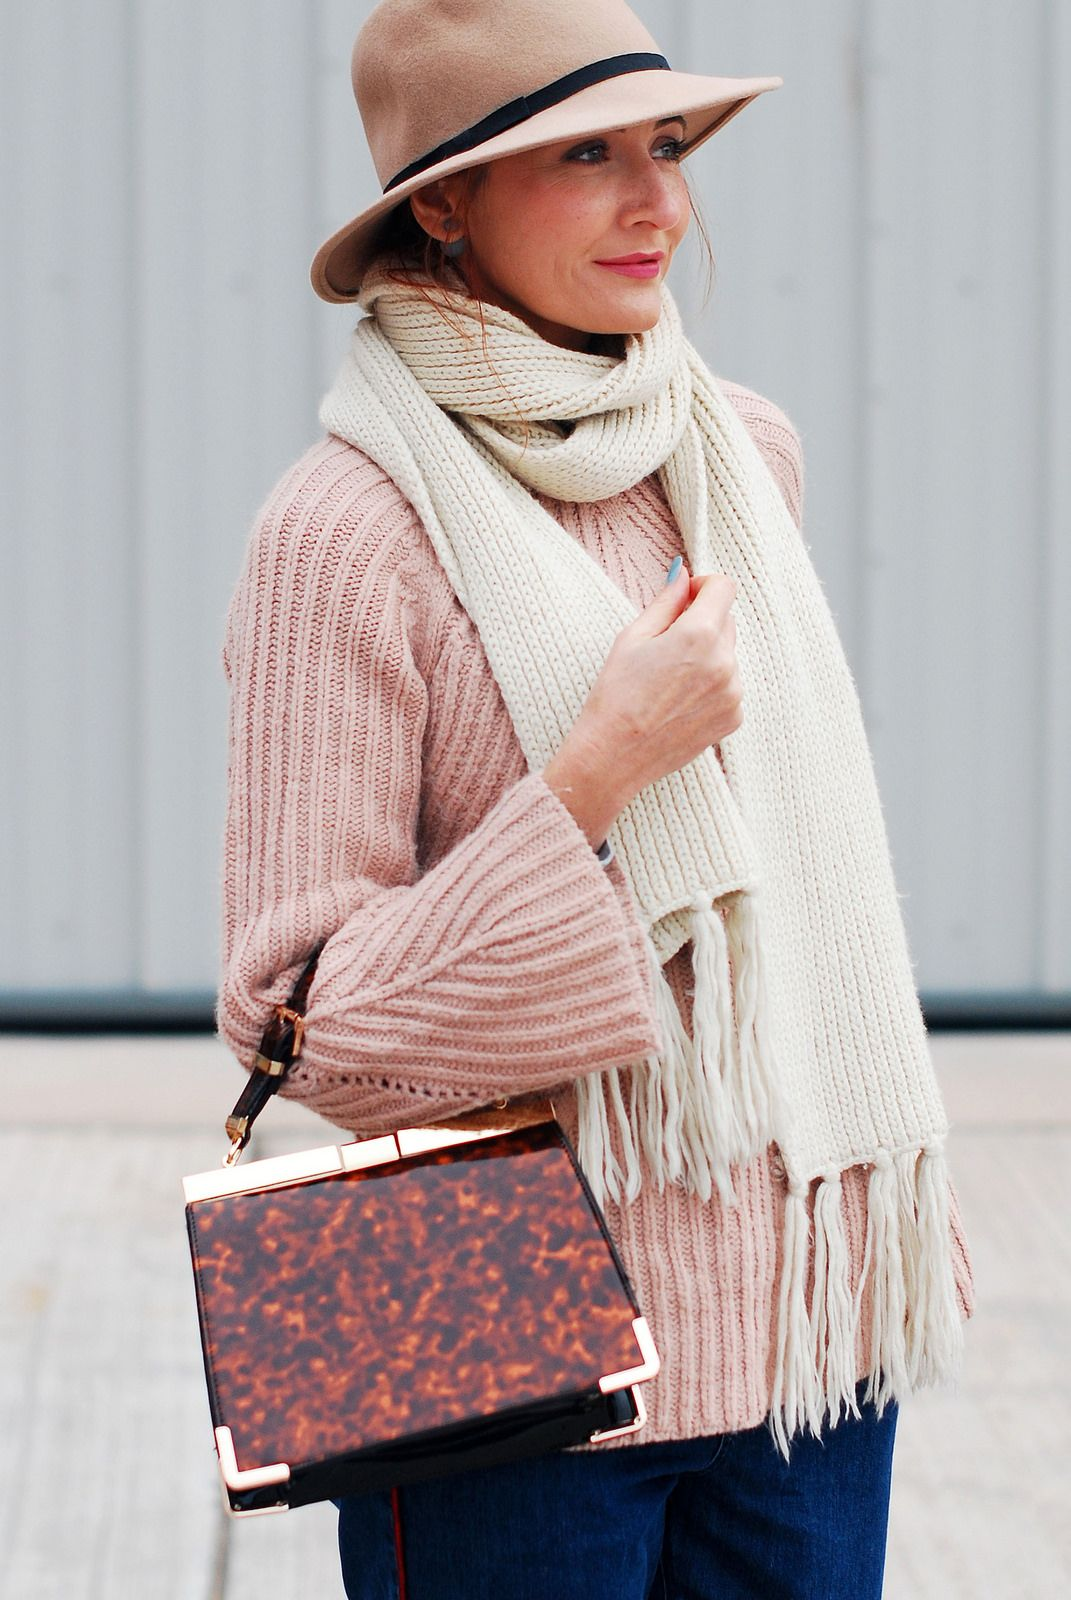 42b1d5e9c47 Casual autumn fall outfit - Blush pink cable knit sweater